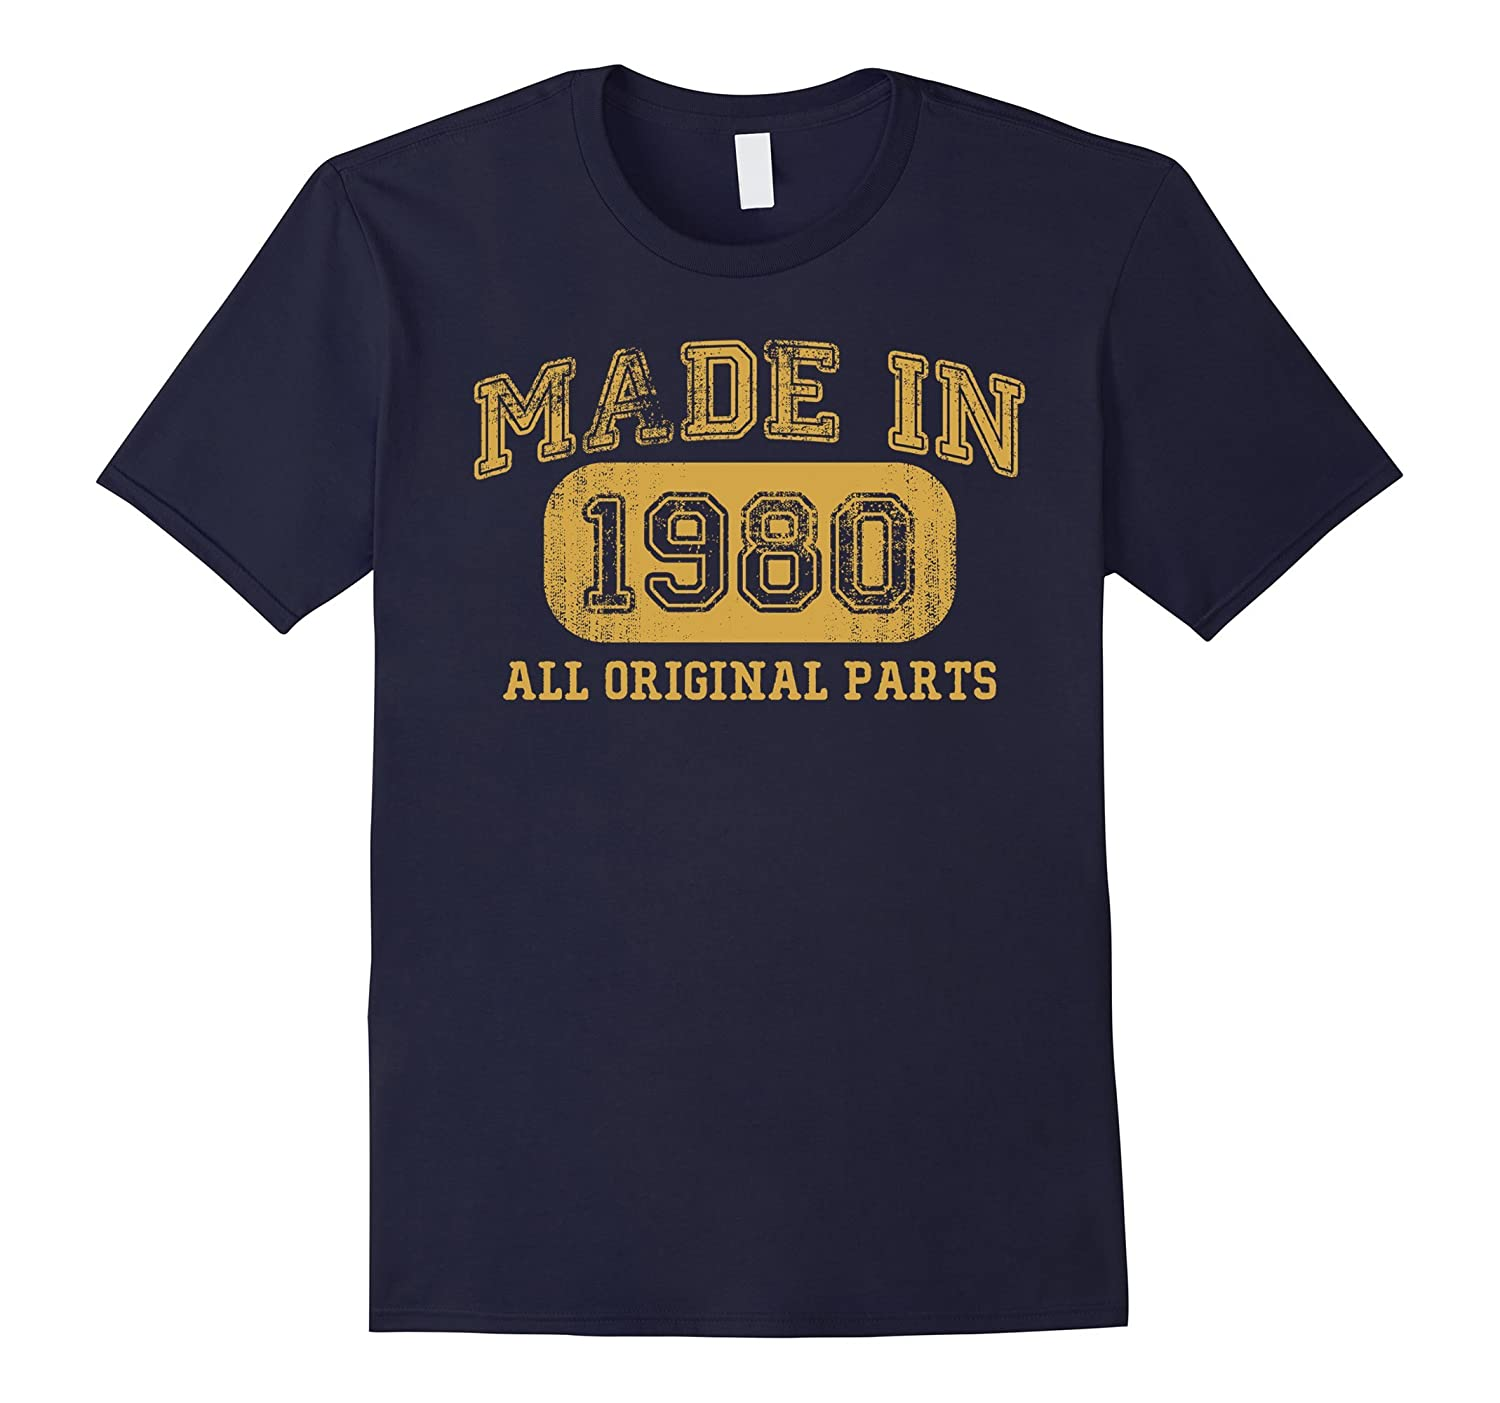 Born in 1980 Tshirt 37th Birthday Gifts 37 yrs Years Made in-TD